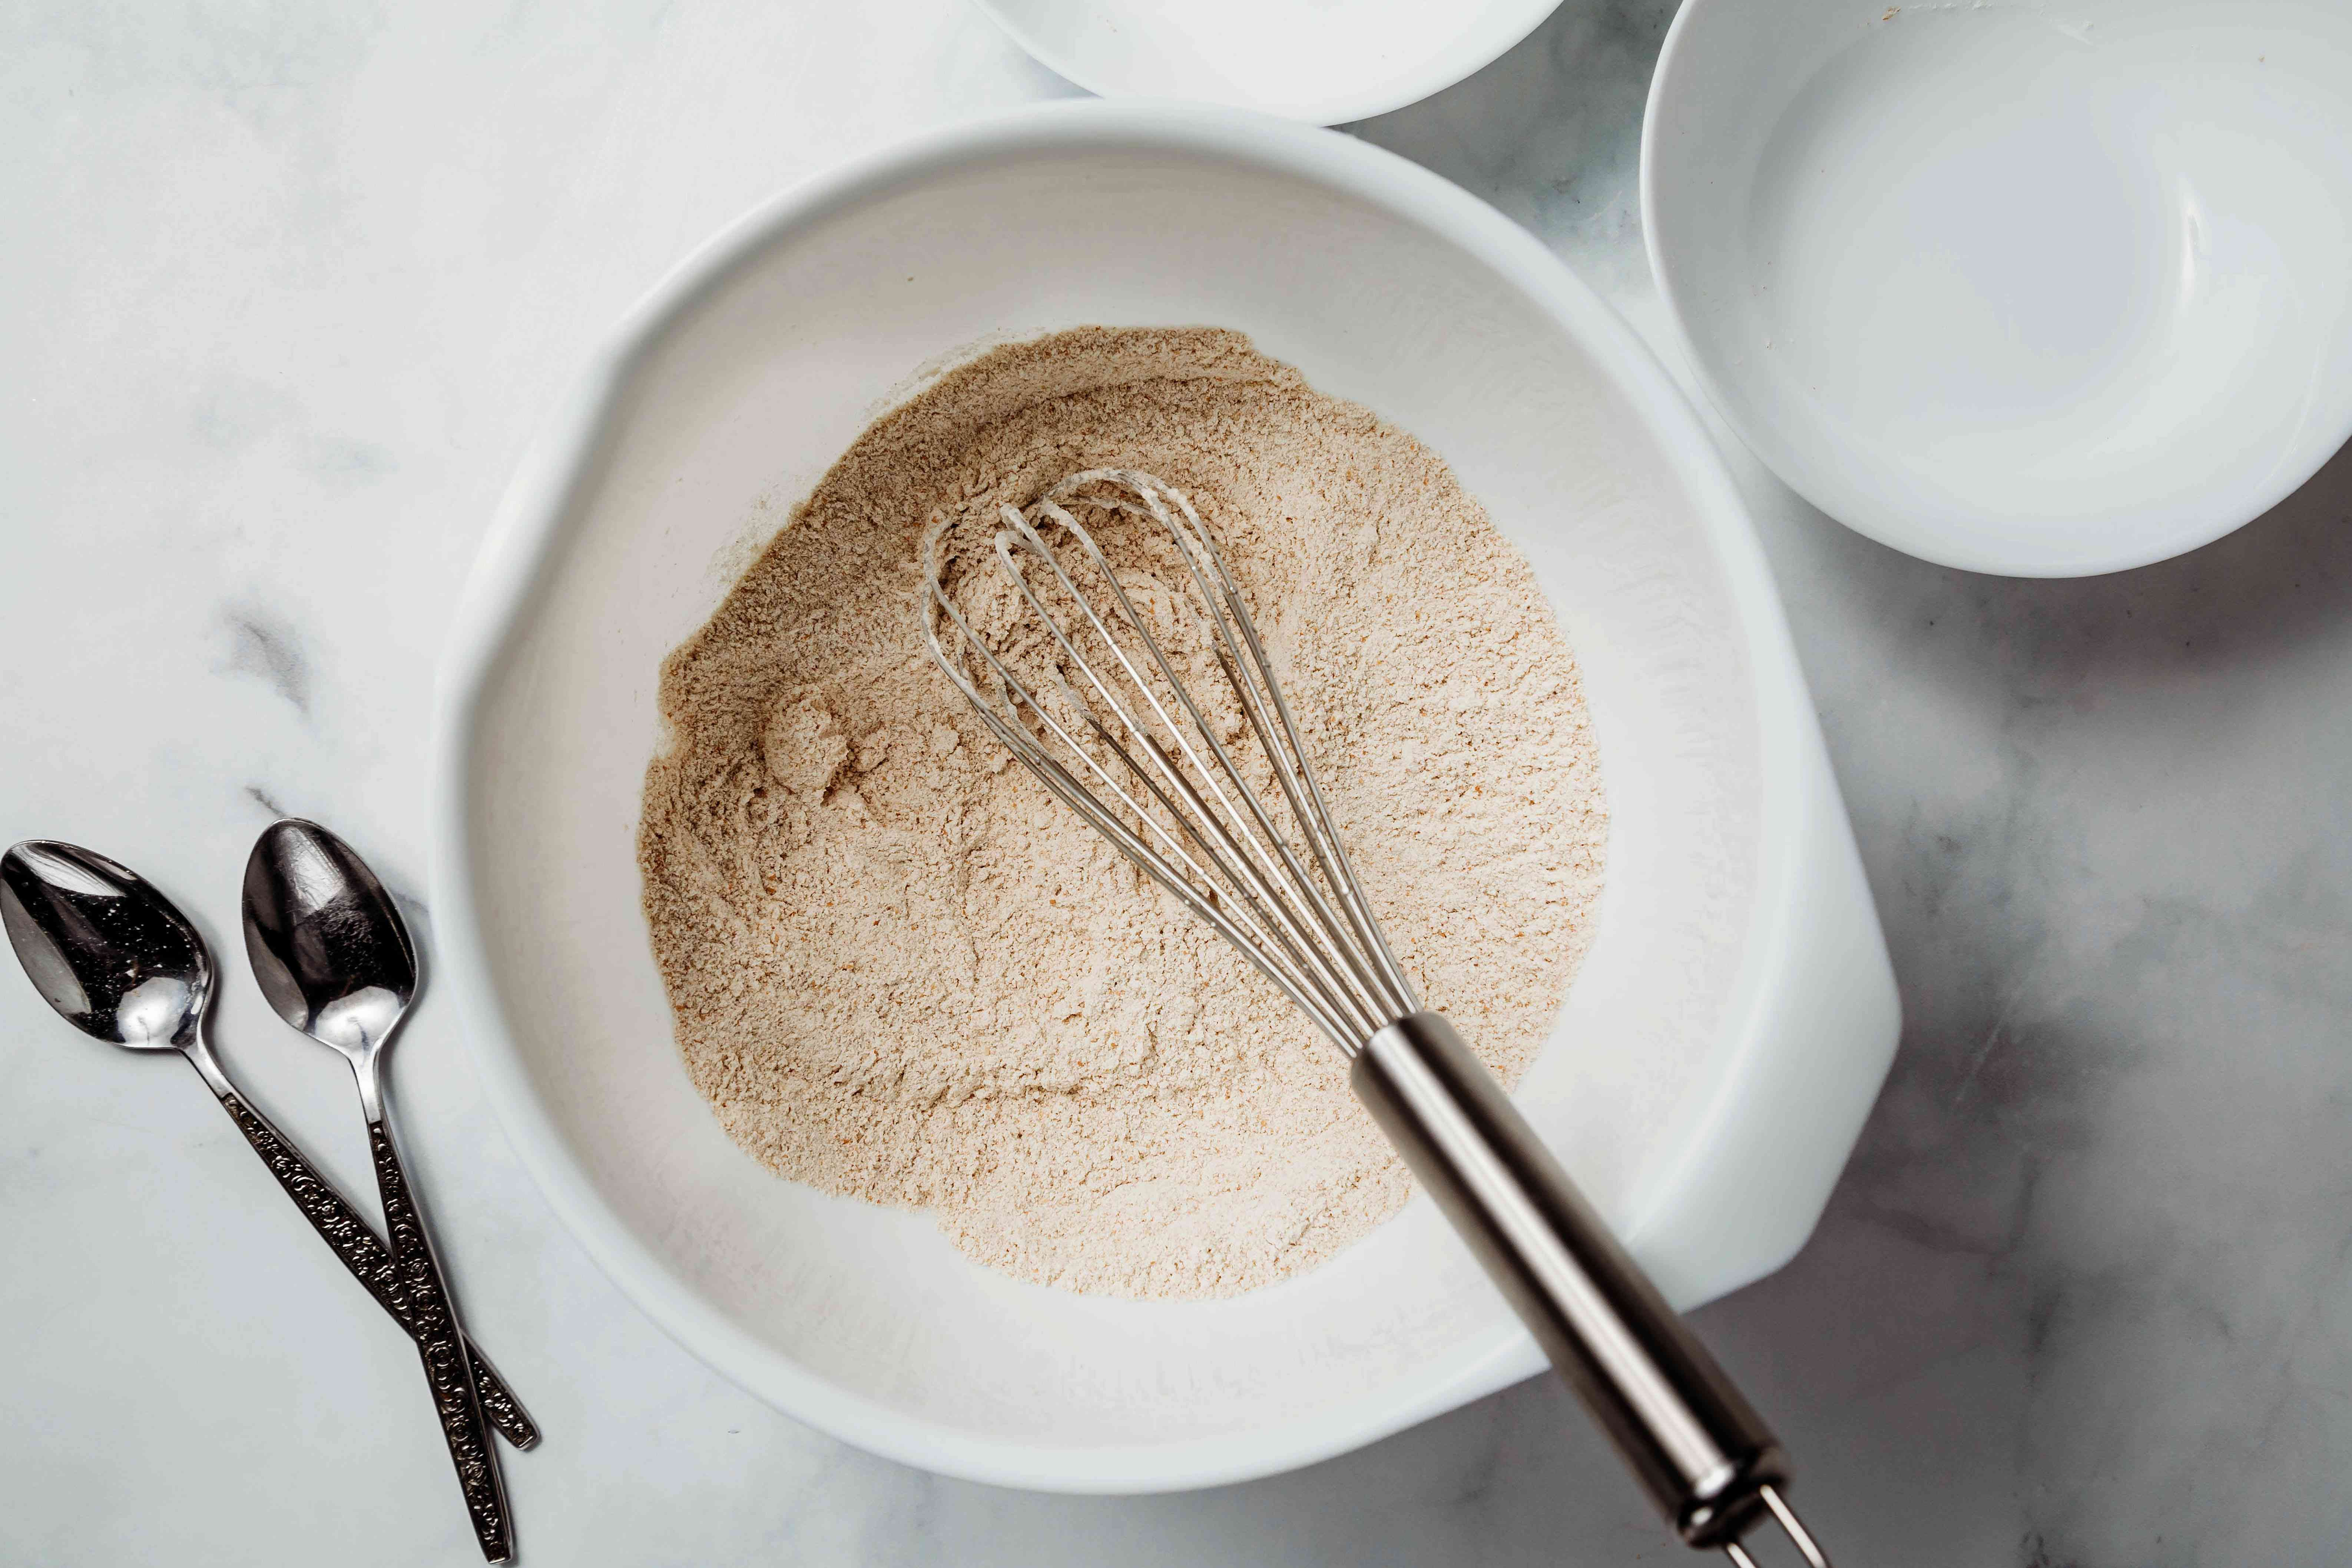 whisk together the whole wheat and spelt flours, salt, and baking soda